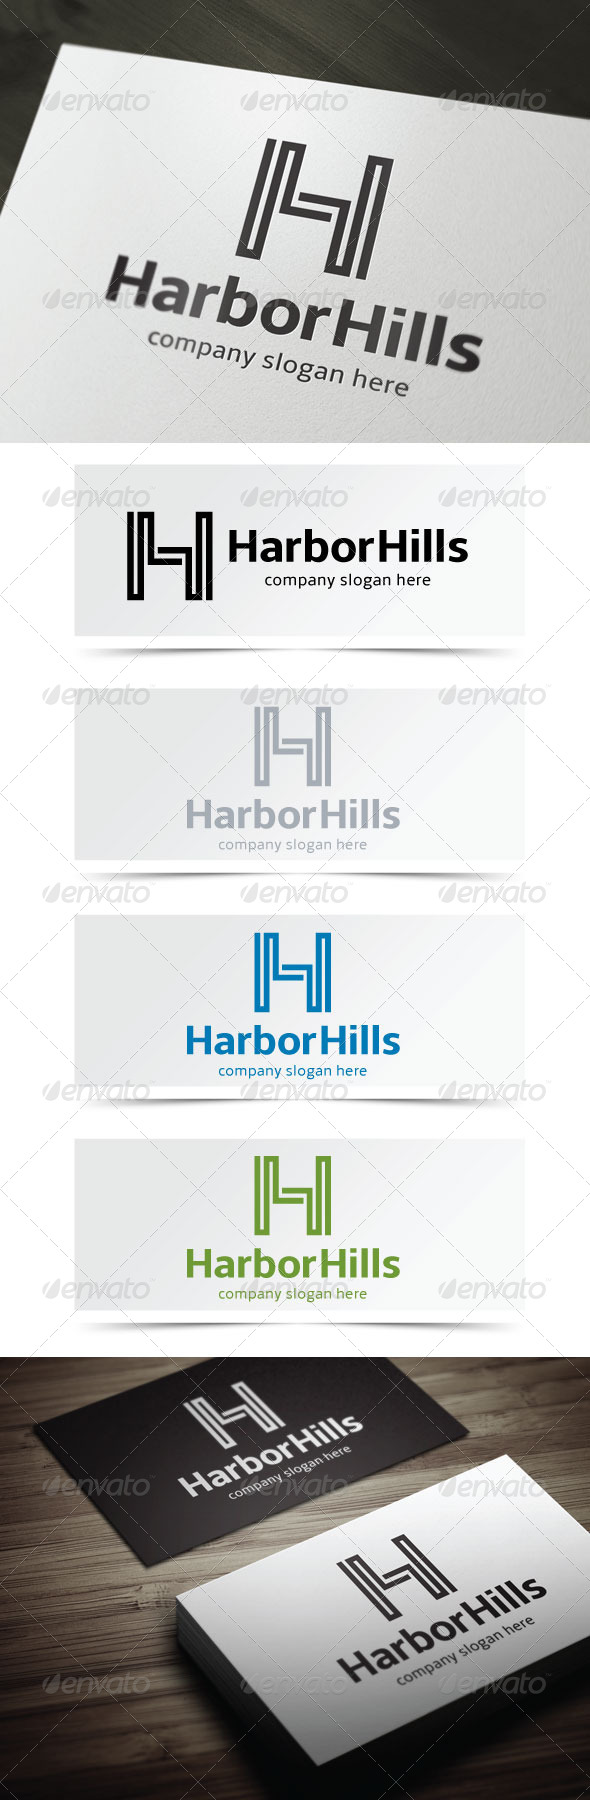 GraphicRiver Harbor Hills 4995279